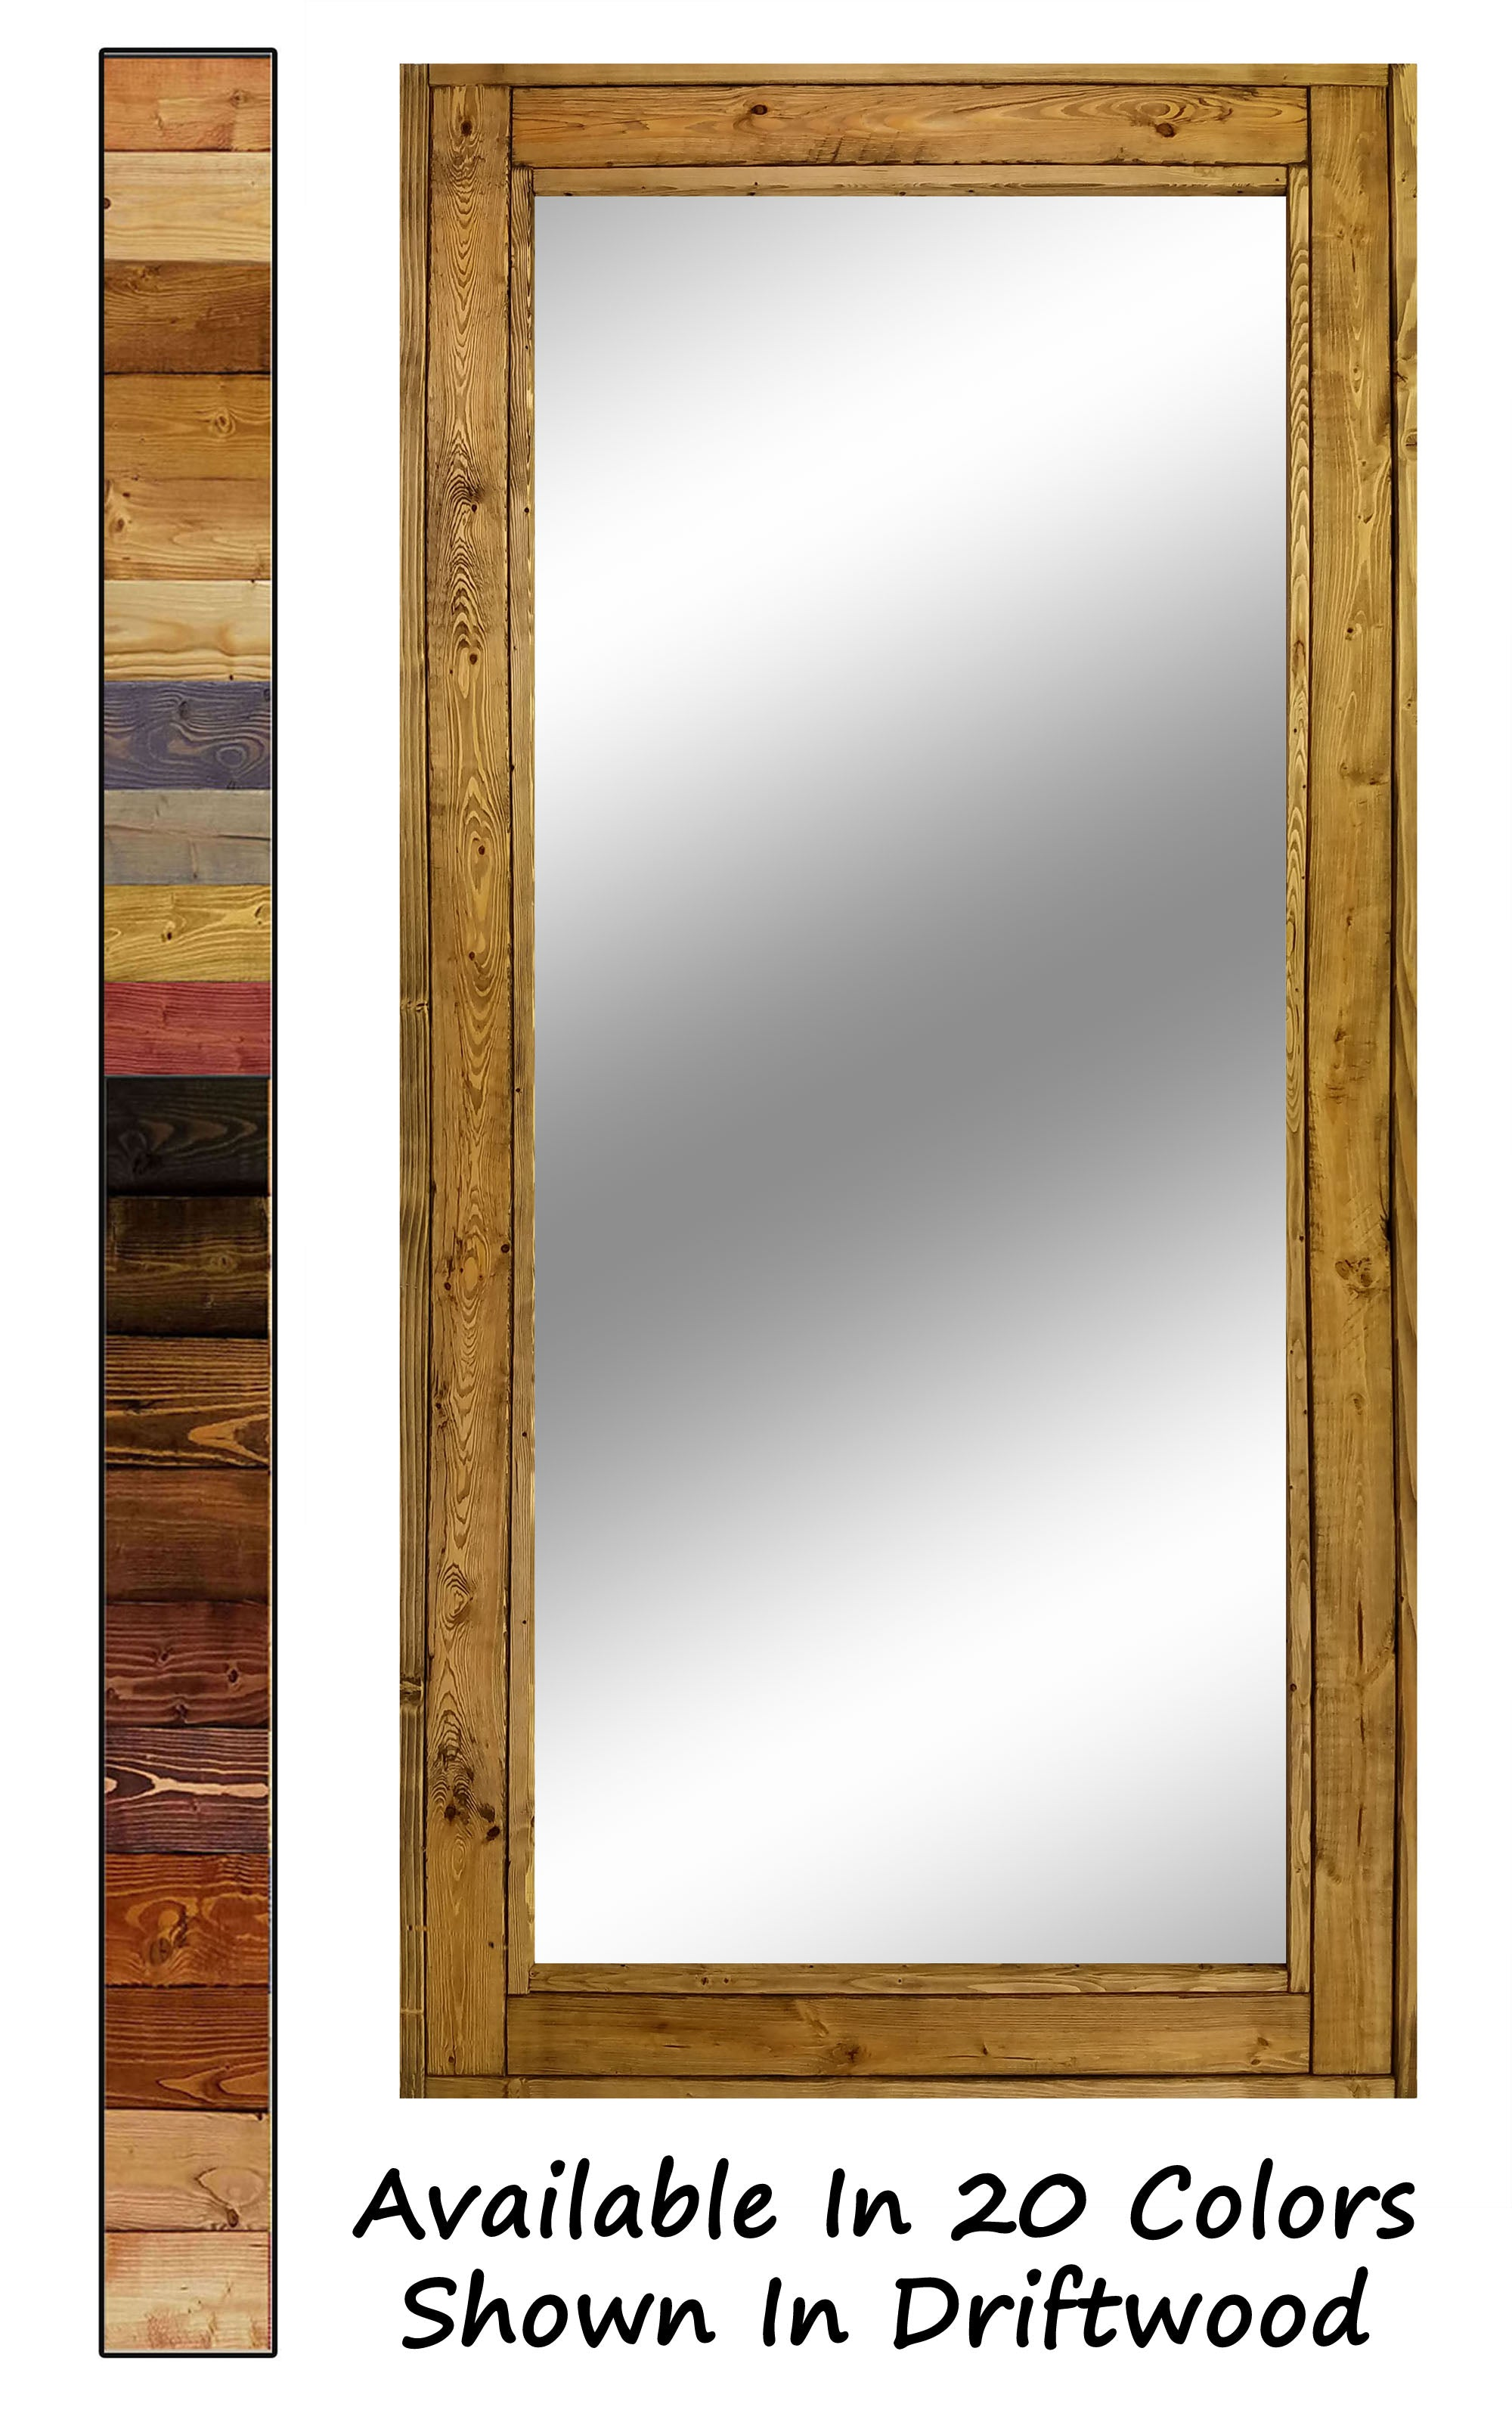 Herringbone Full Length Floor Mirror, 20 Stain Colors